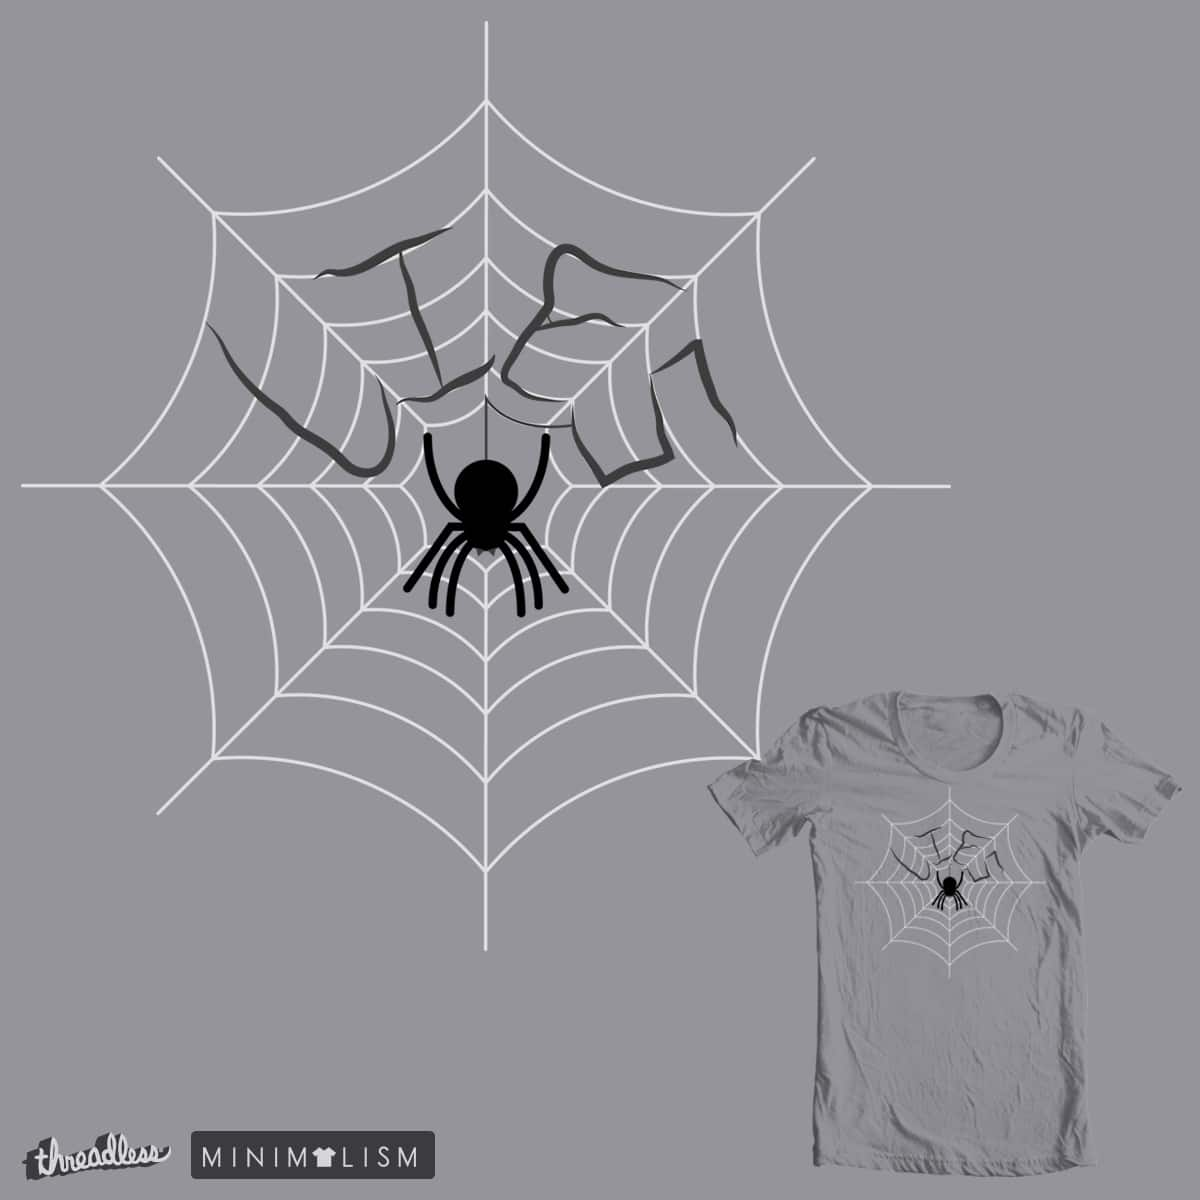 Web Of Lies by Queeg500 on Threadless